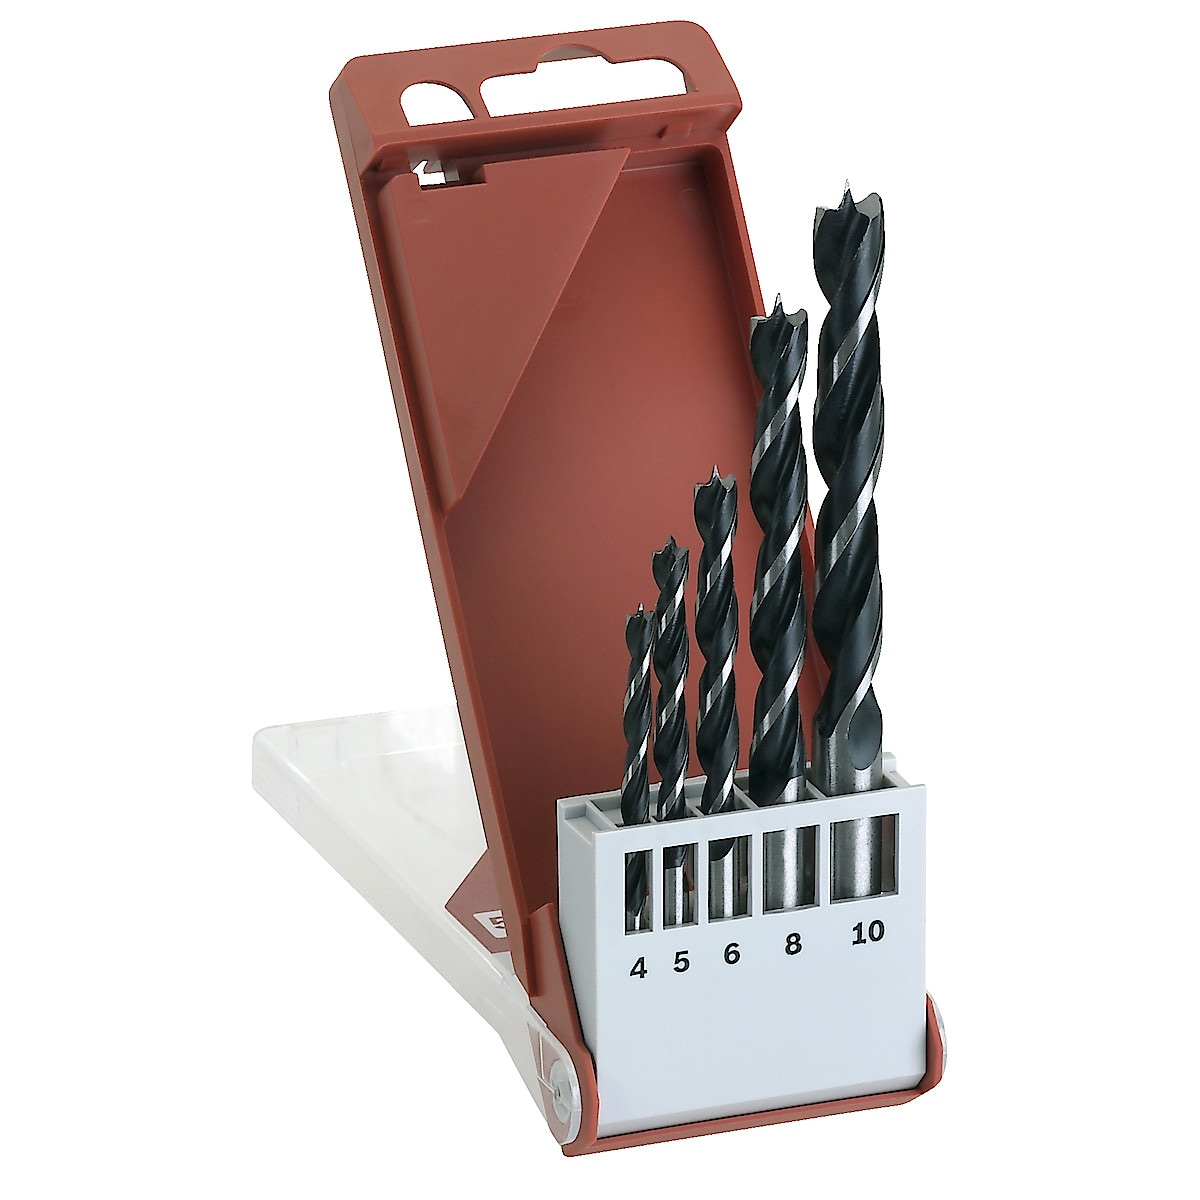 Bosch Wood Drill Bit Set